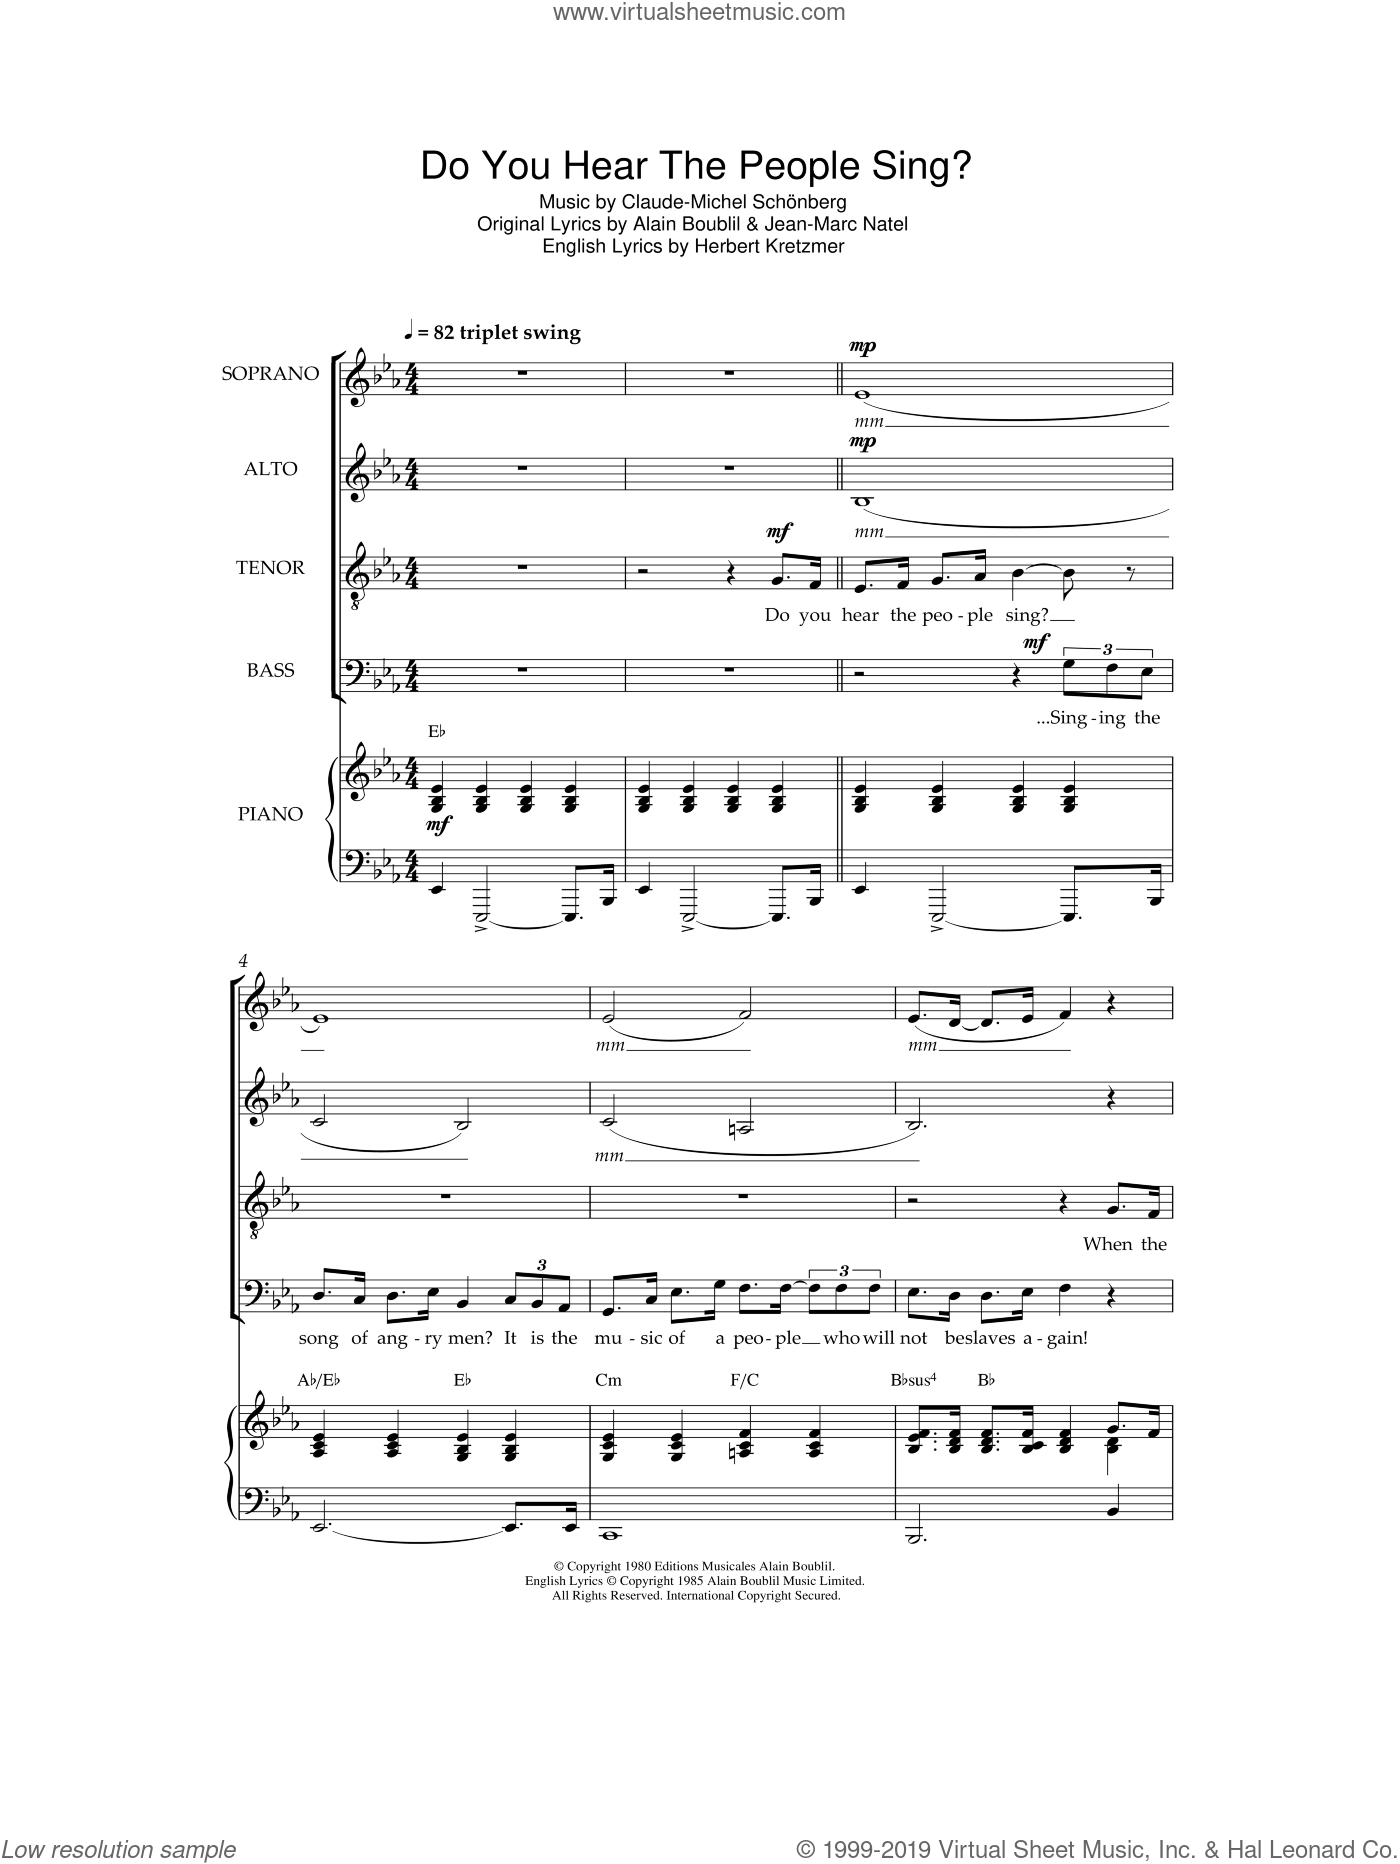 Do You Hear The People Sing? (from Les Miserables) sheet music for choir and piano by Jean-Marc Natel